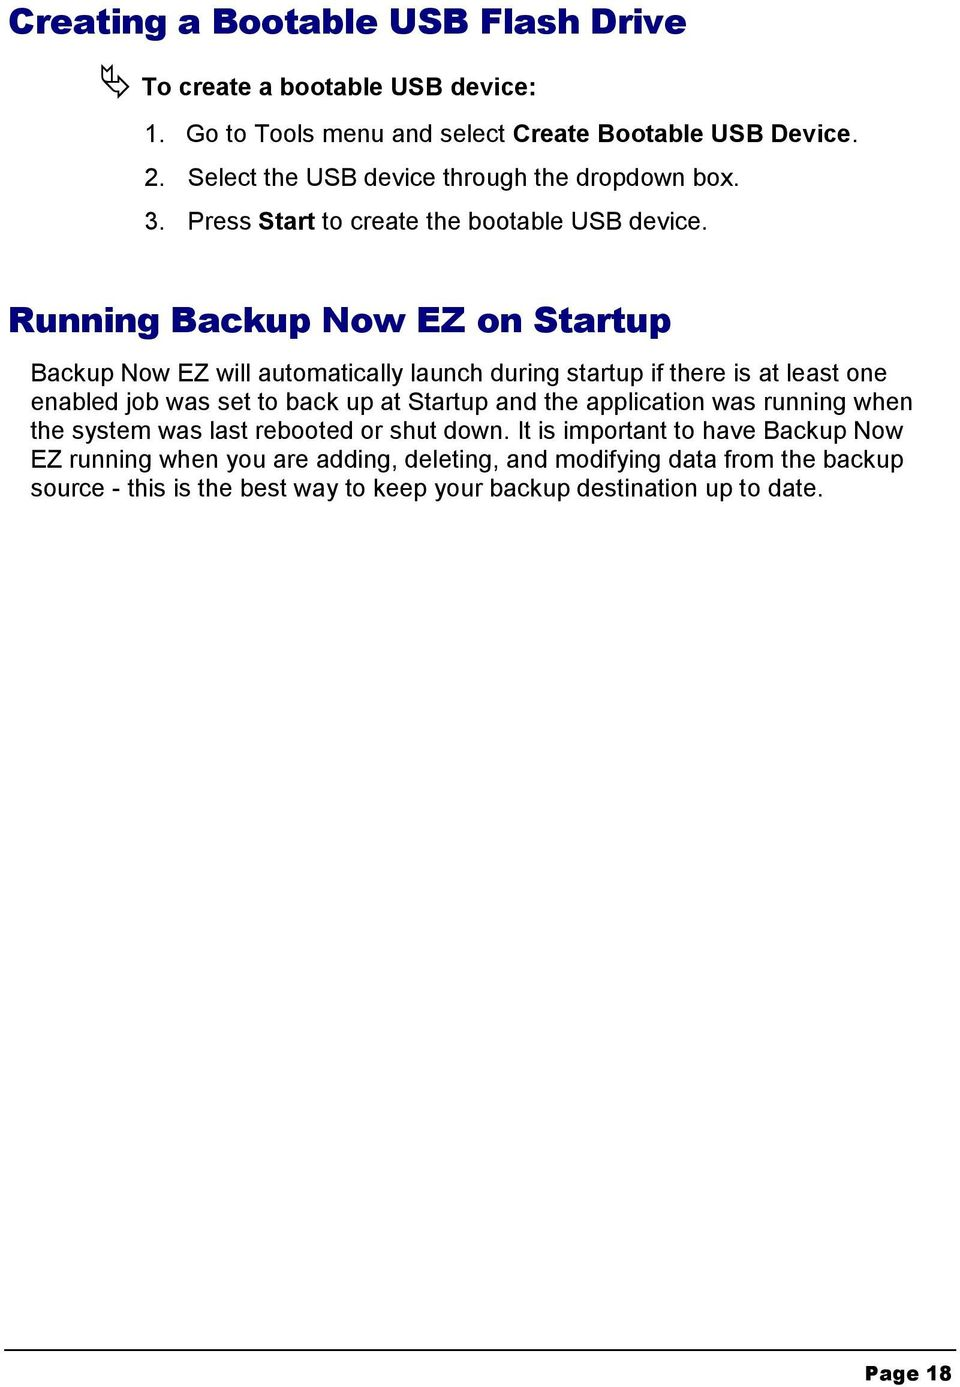 Running Backup Now EZ on Startup Backup Now EZ will automatically launch during startup if there is at least one enabled job was set to back up at Startup and the